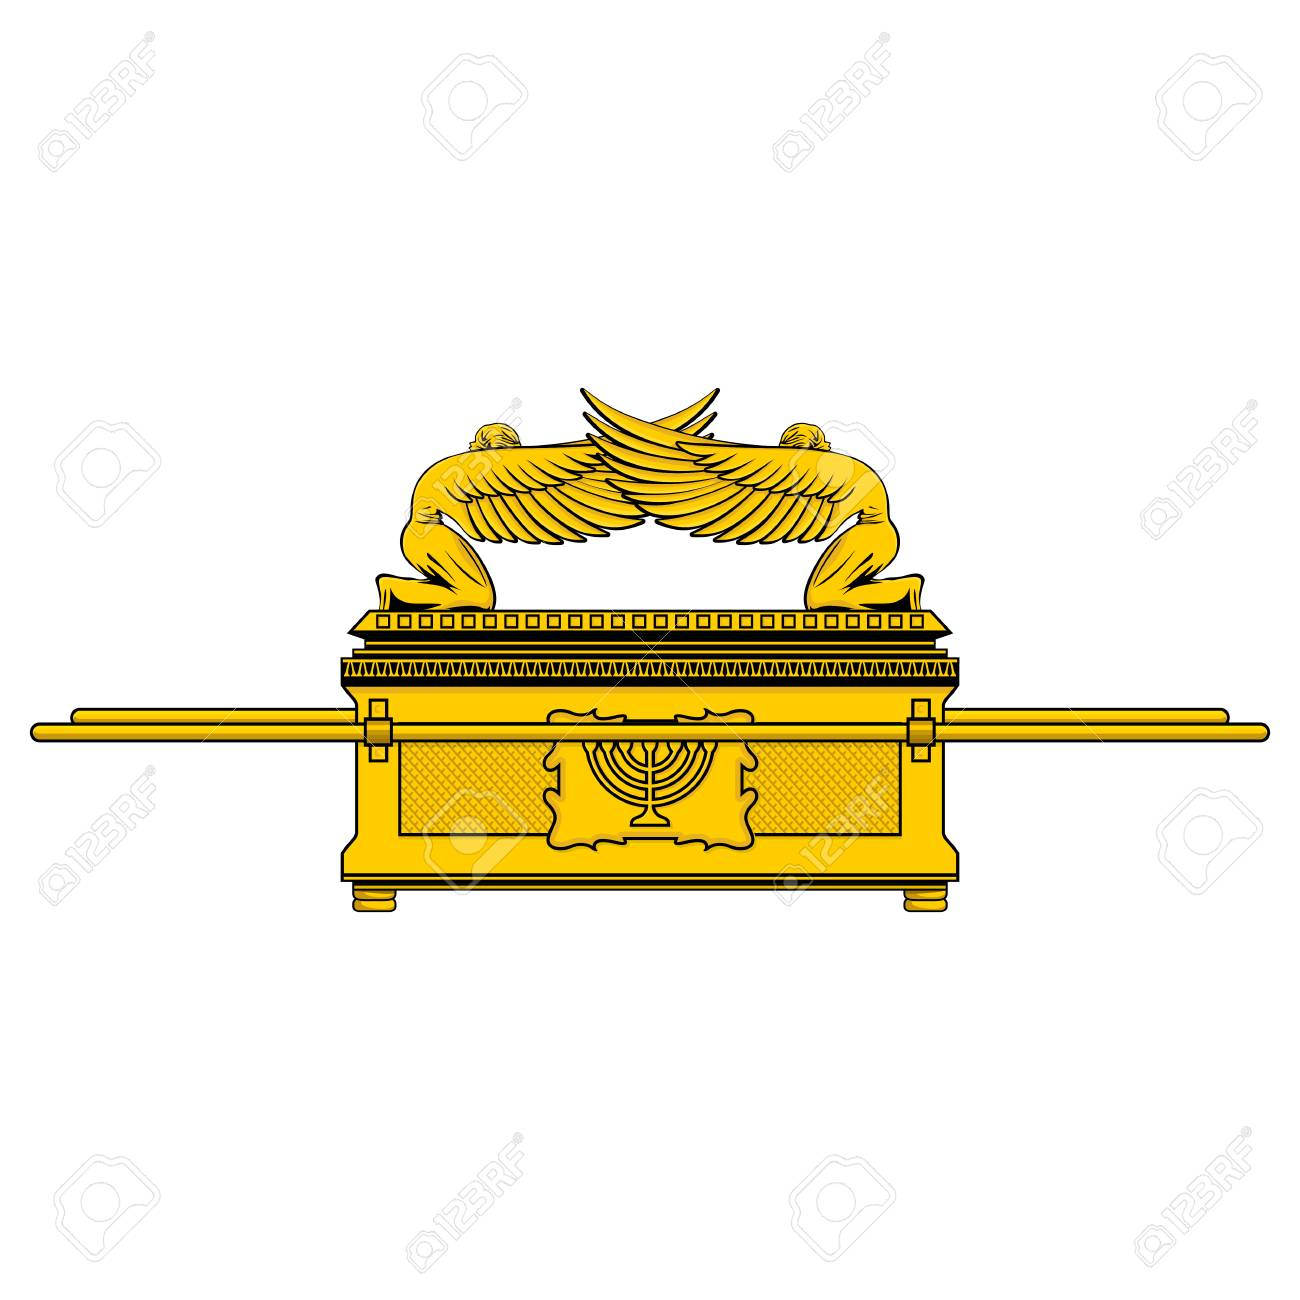 The Ark of the Covenant is the shrine of the Jewish people.